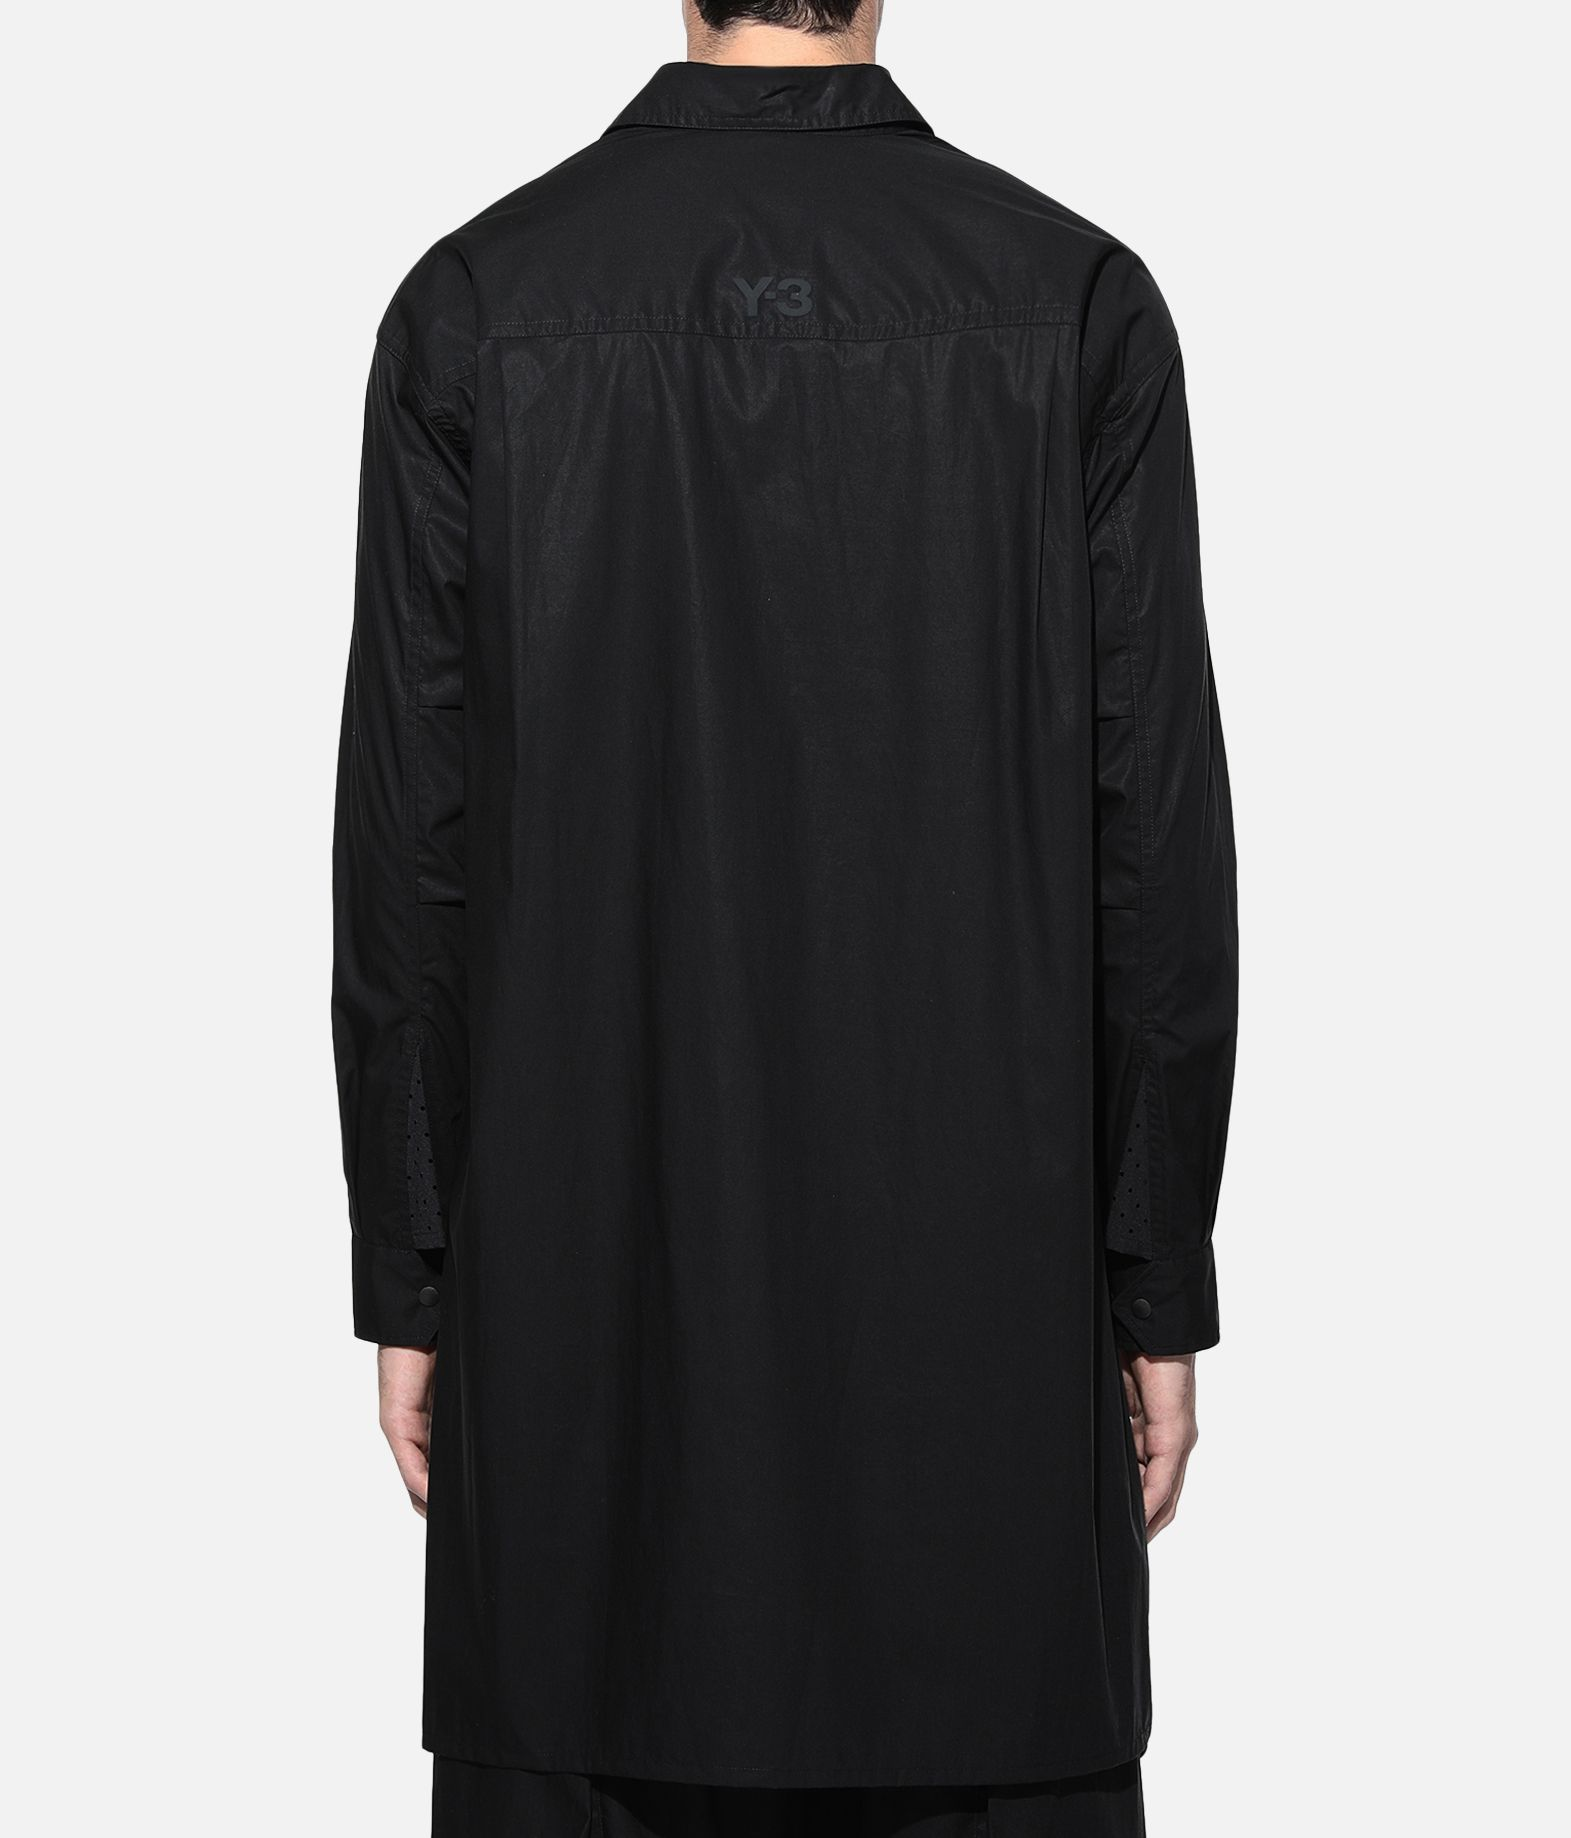 Y-3 Y-3 Tech Long Shirt Long sleeve shirt Man d